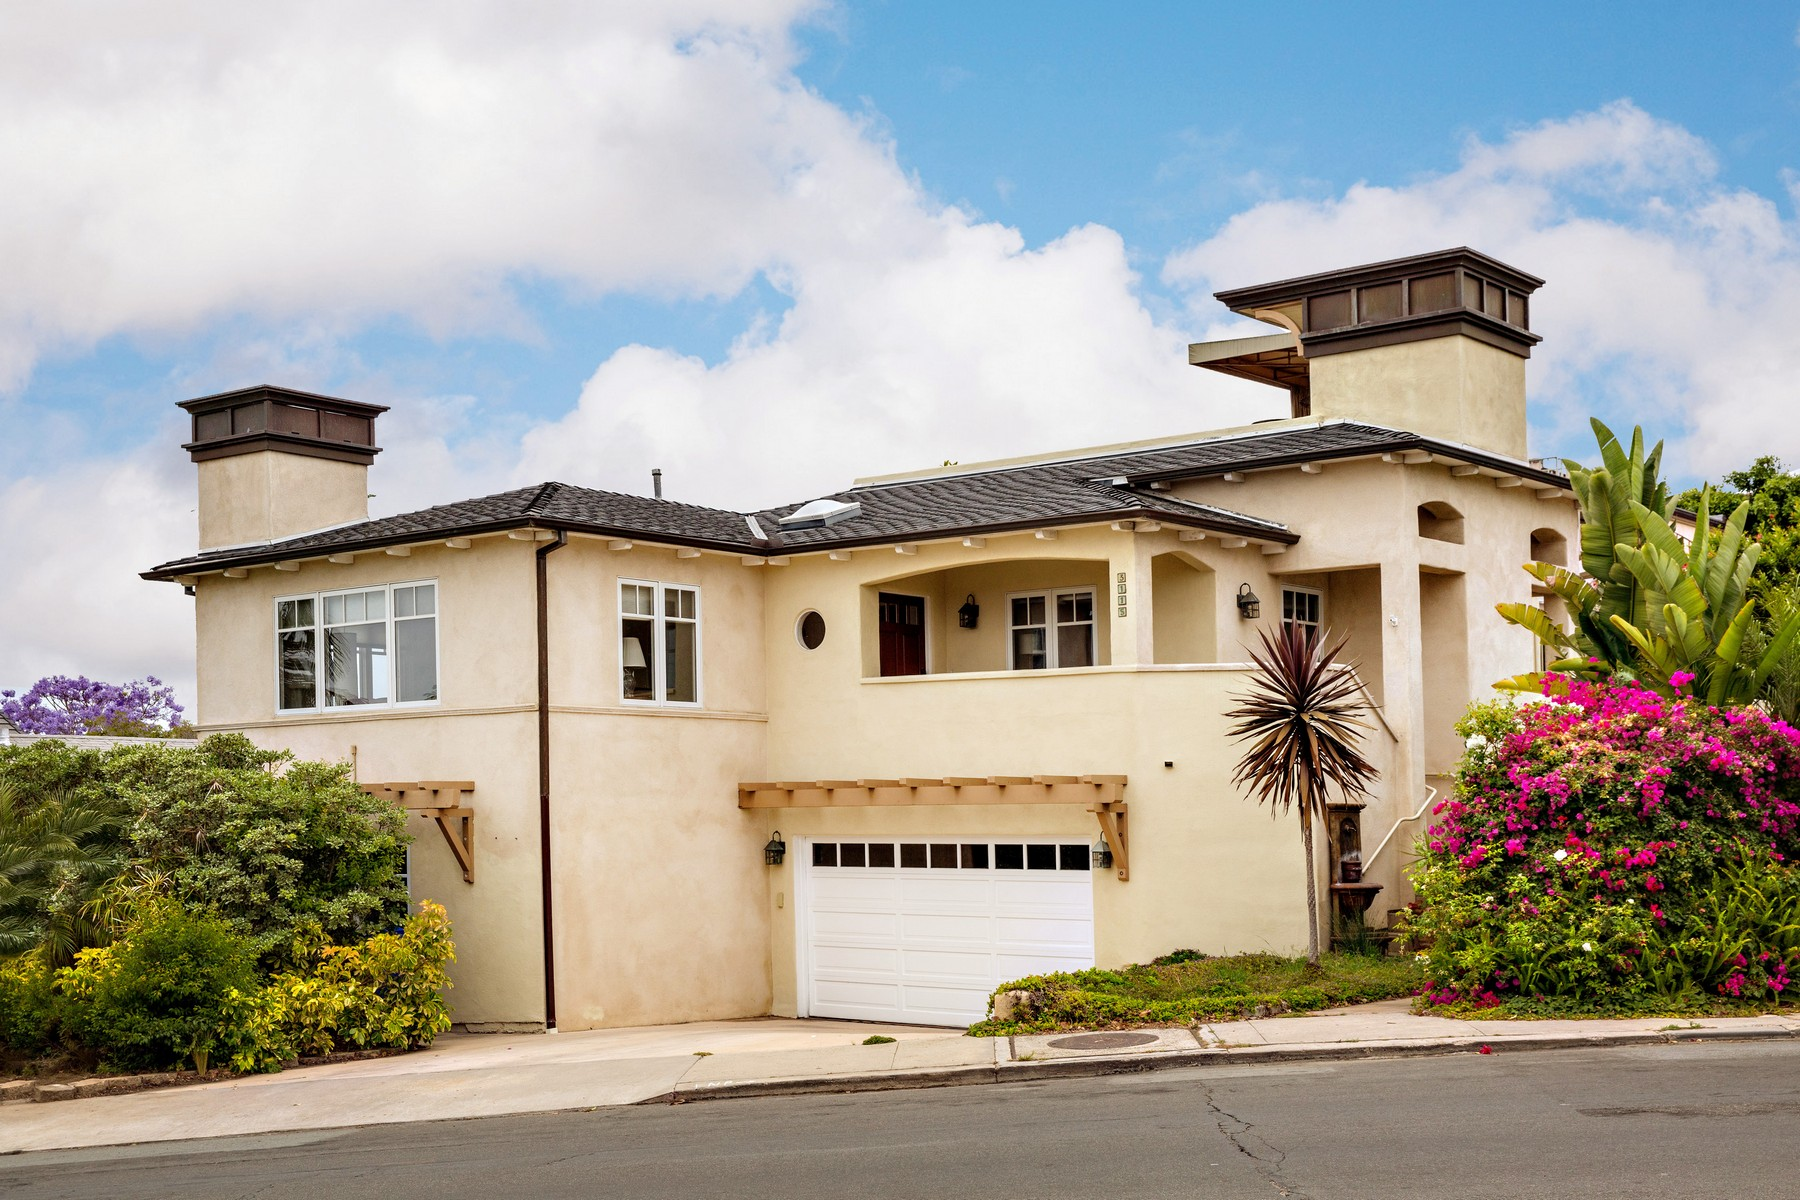 Single Family Home for Sale at 3115 Talbot San Diego, California, 92106 United States